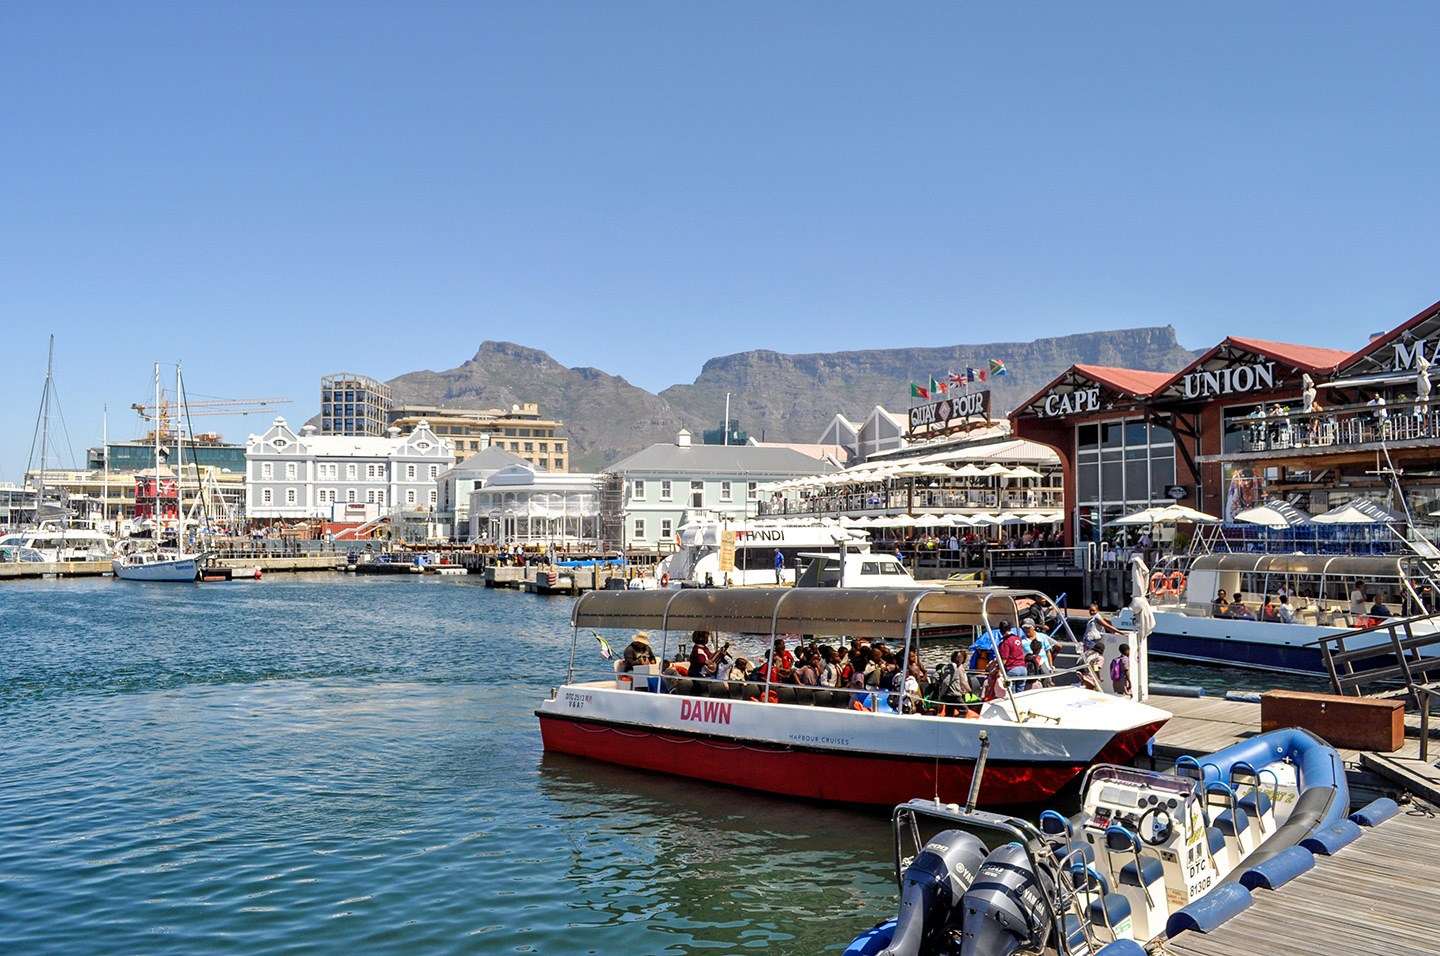 The V&A Waterfront, Cape Town